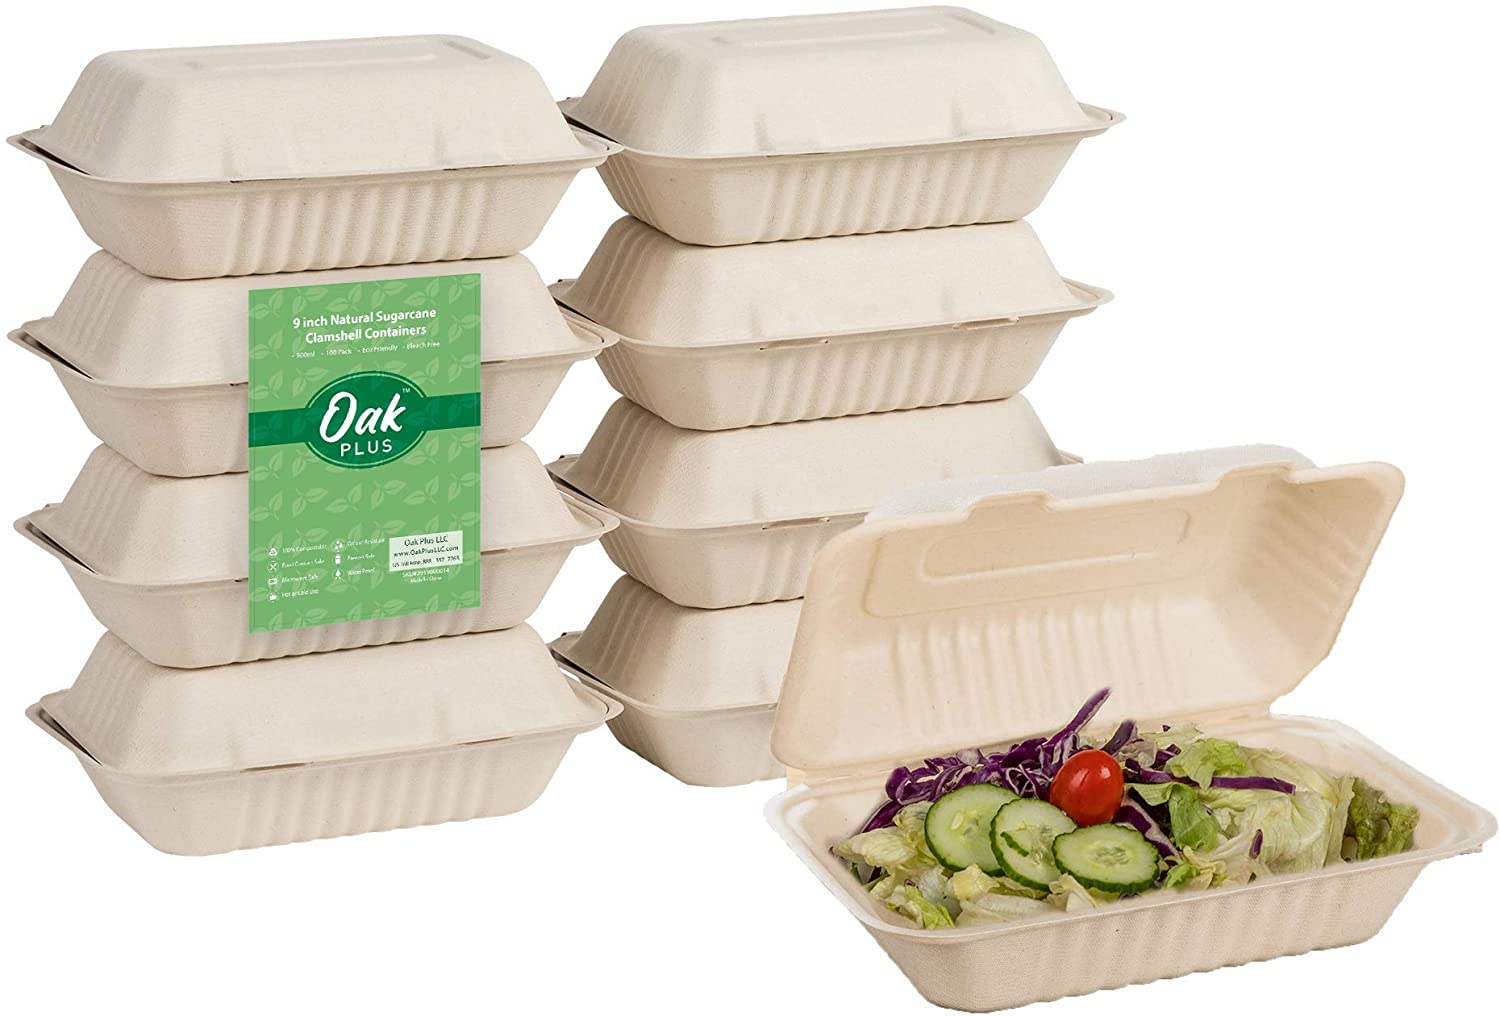 Oak Plus Compostable Clamshell Takeout Containers [6X9 300-Pack], to Go Food Boxes with Lids, Eco-Friendly Meal Prep Storage Containers, Microwave Safe - Sugarcane Fiber